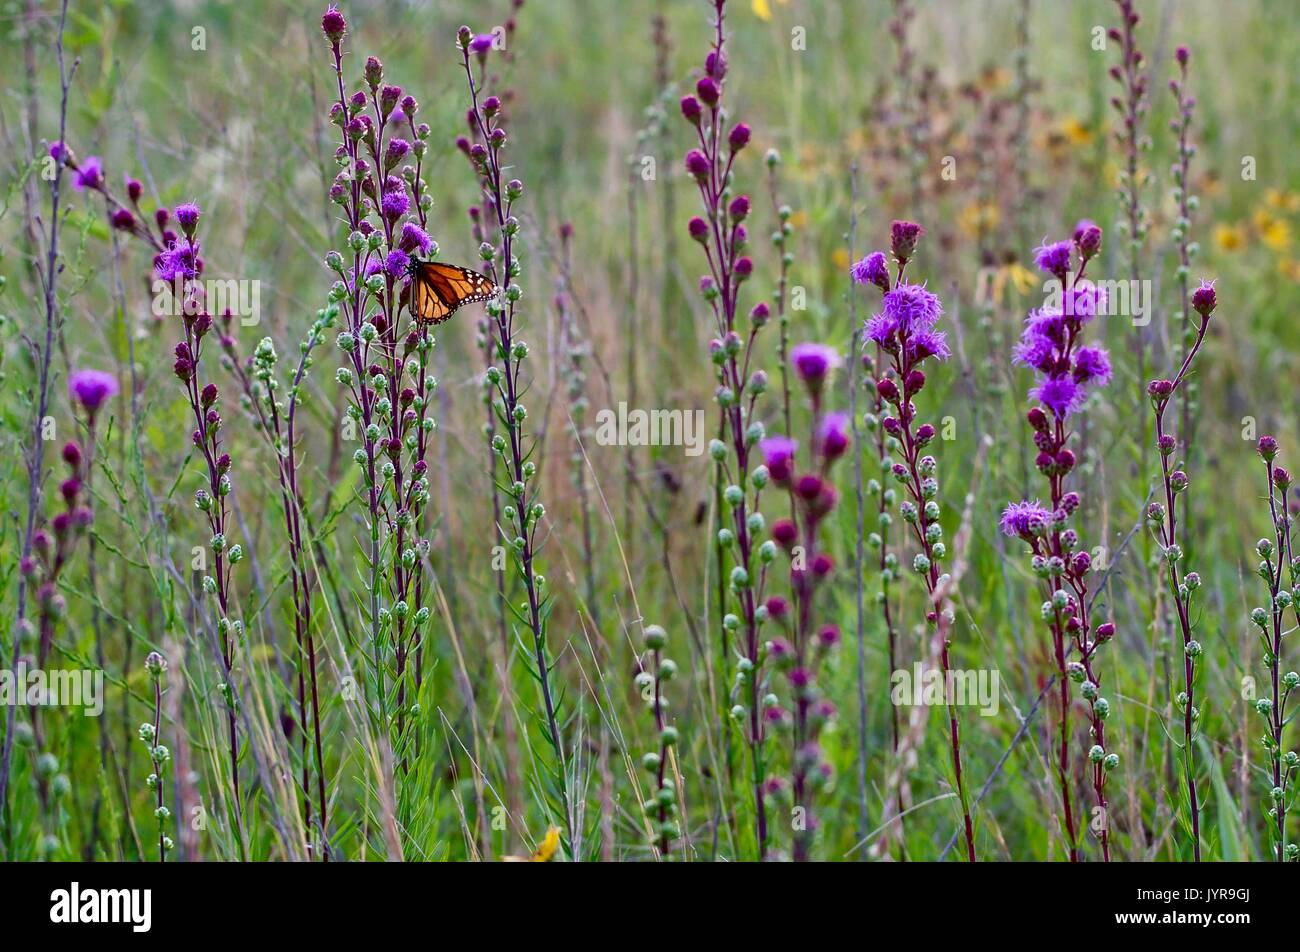 Purple Flowers Tall Stems And A Monarch Butterfly Stock Photo